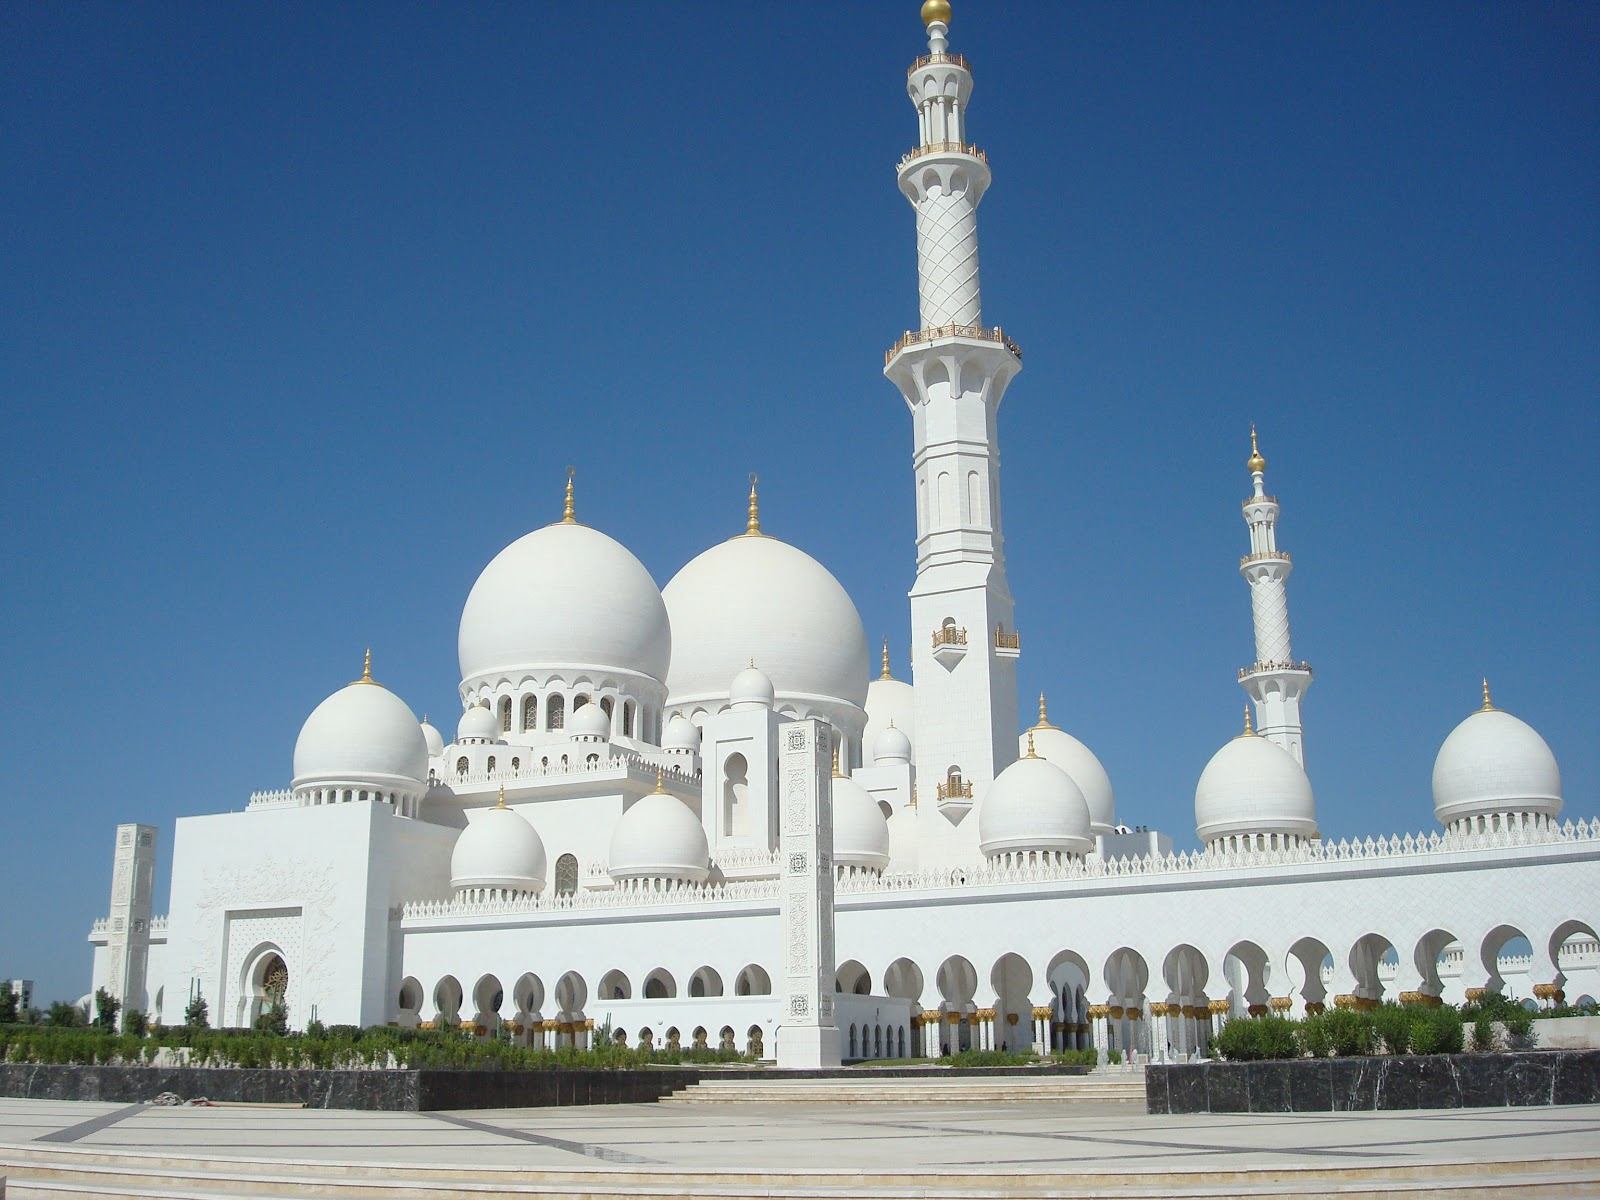 Exterior: Adventures In The Middle East: Sheikh Zayed Grand Mosque